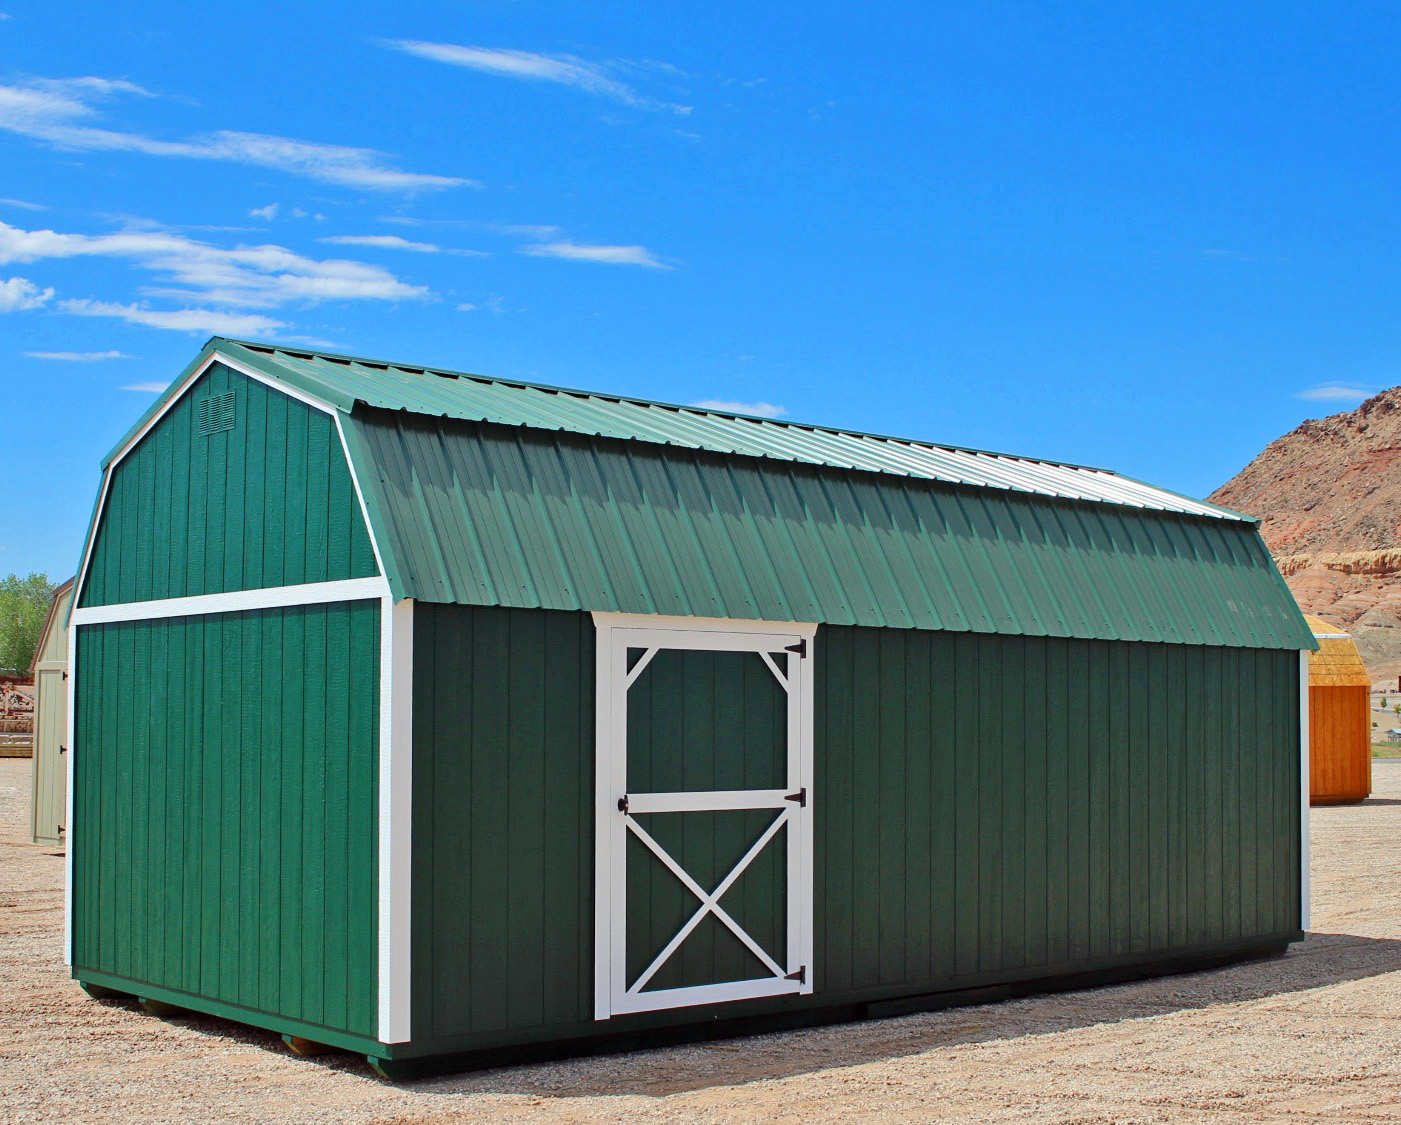 Painted LP SmartSide Panels and free metal roof upgrade - Vegas Sheds